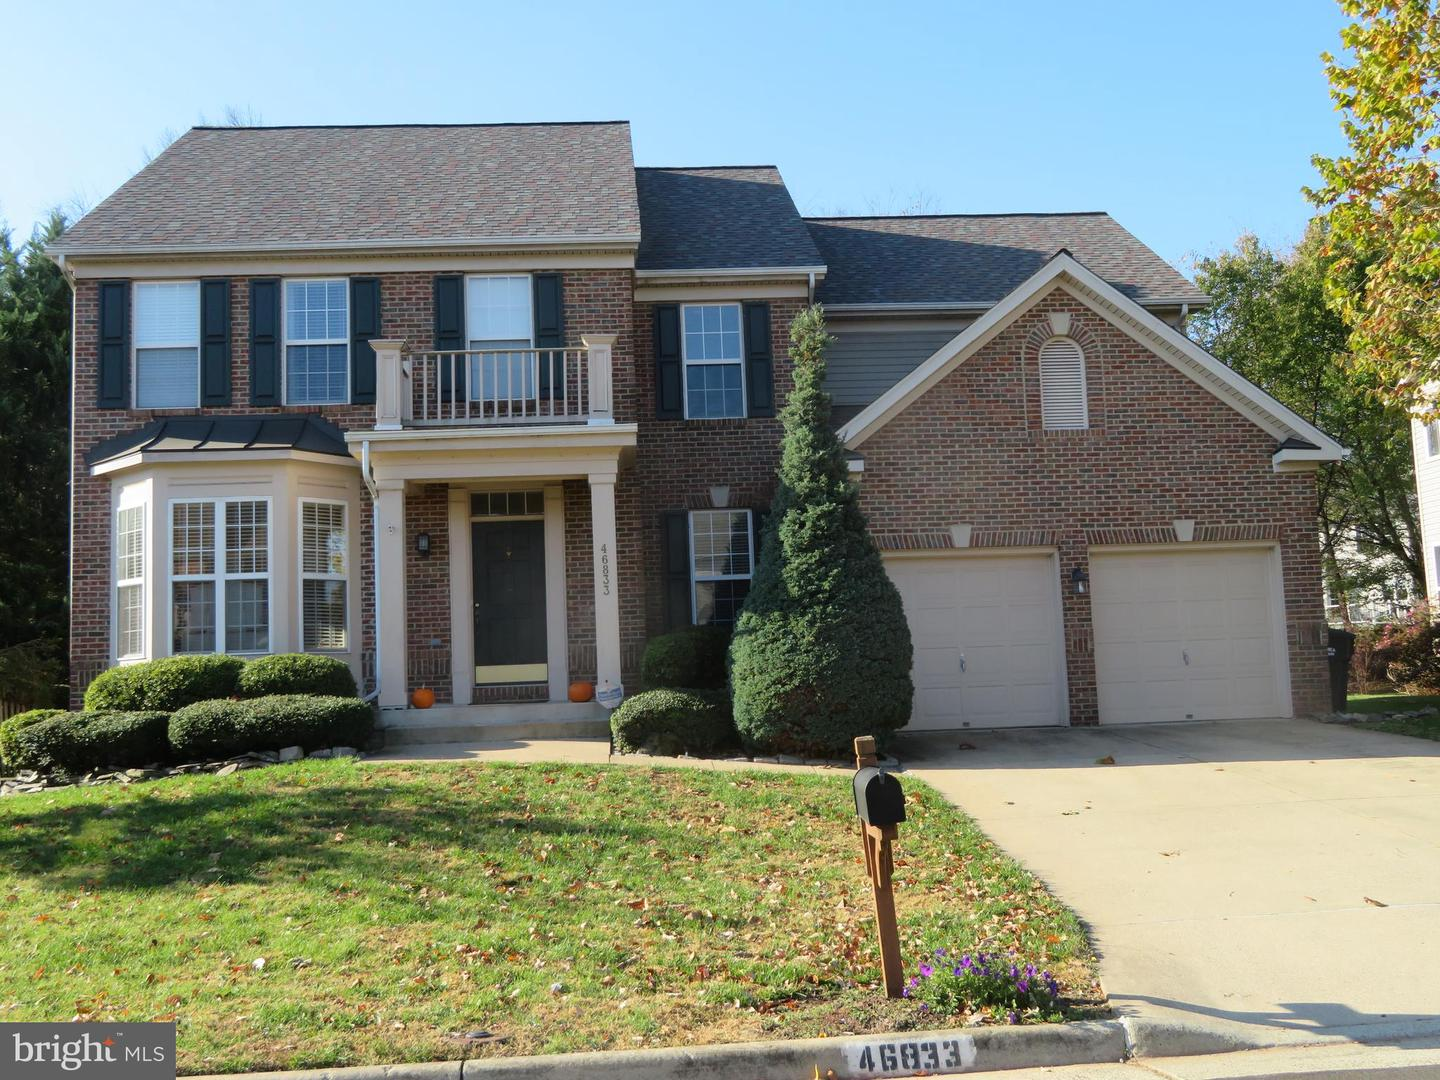 Photo of 46833 NORTHBROOK WAY, STERLING, VA 20164